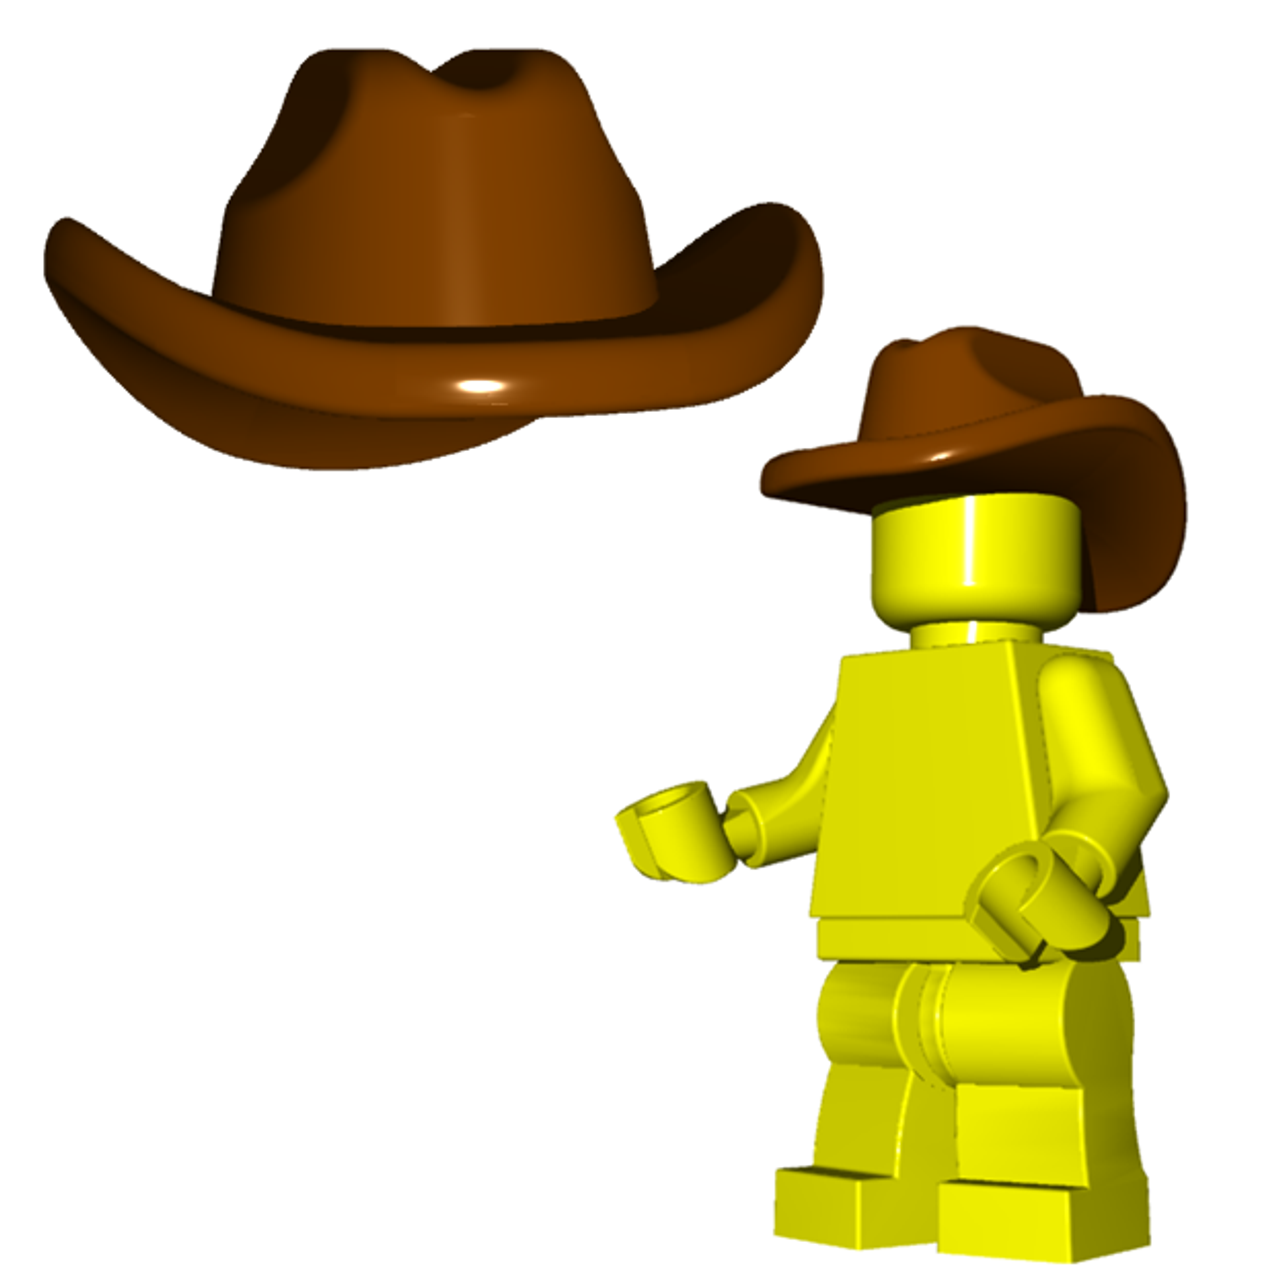 Minifigure Hat Cowboy Hat Cartoon drawing cowboy, cowboy, miscellaneous, hat, cowboy png. cowboy hat